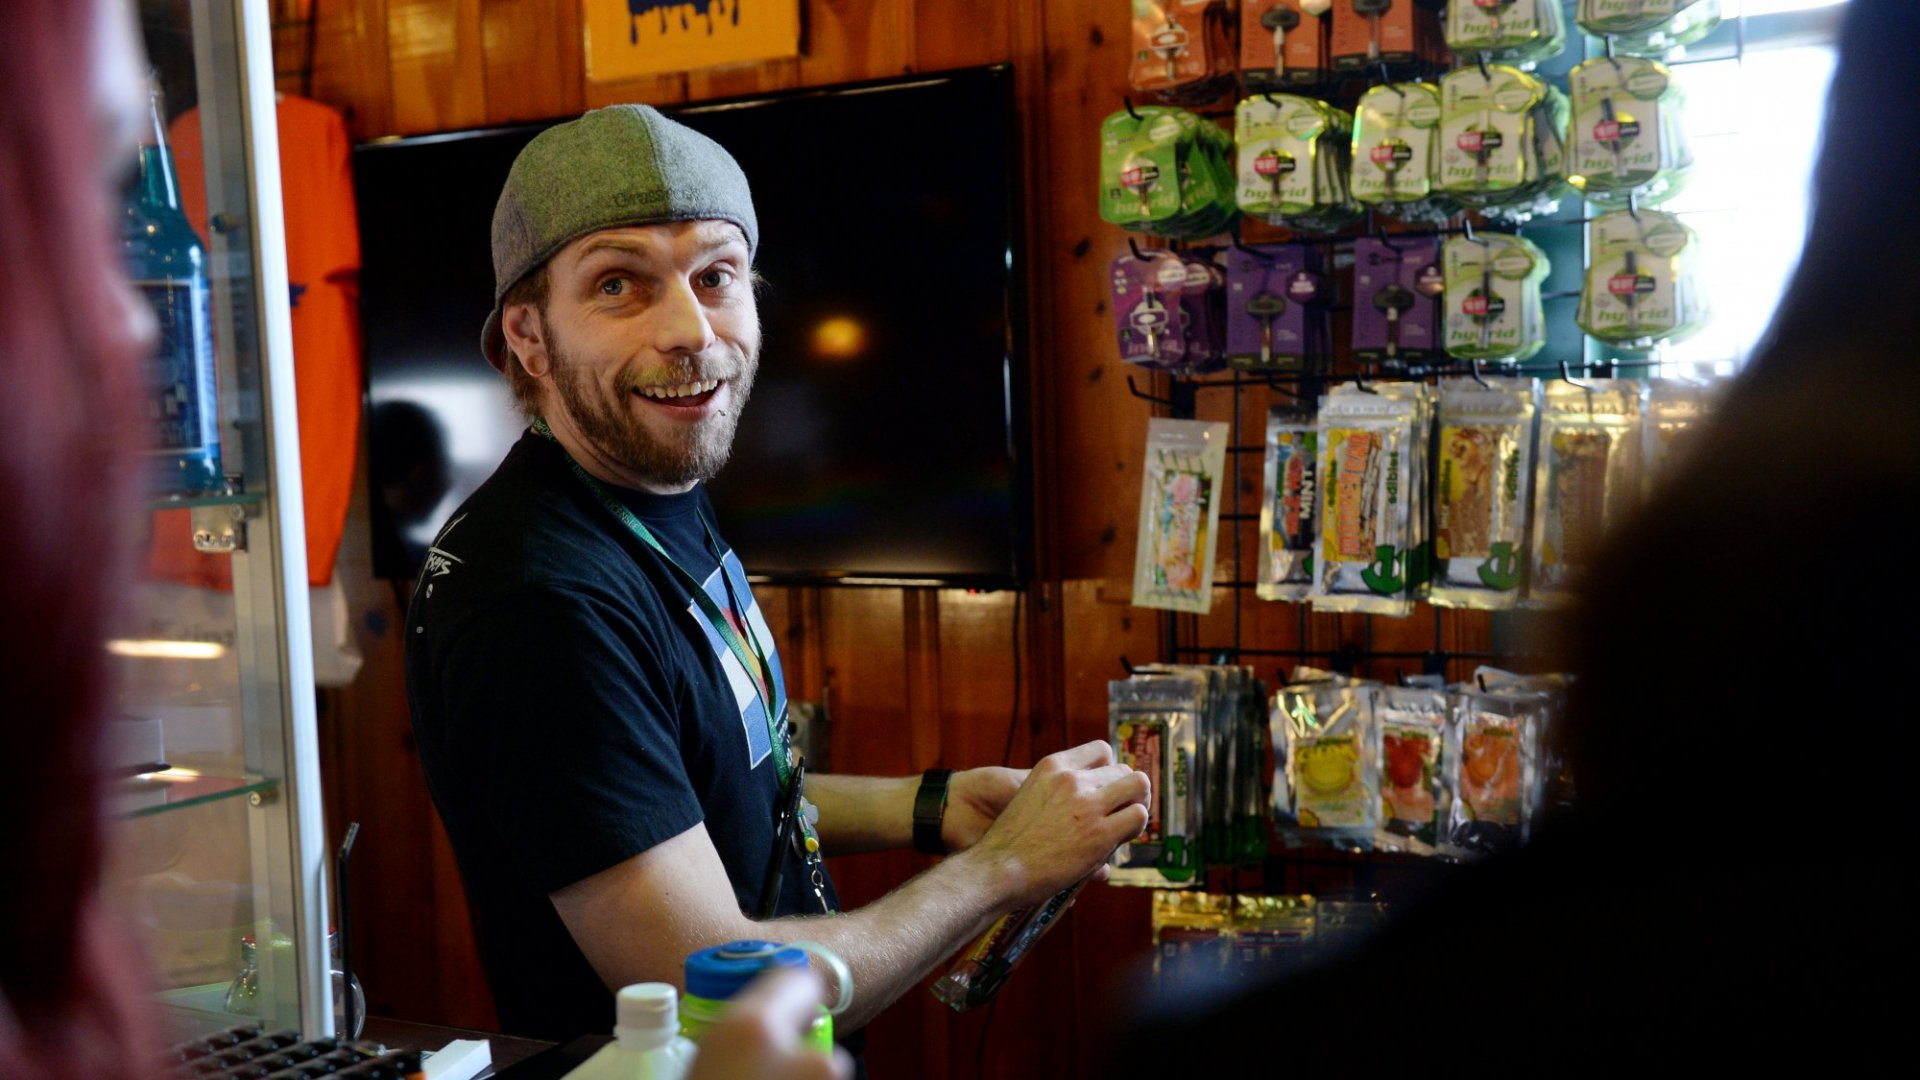 A bud tender at La Conte's dispensary in Denver, Colorado. The marijuana industry is growing and creating jobs in the legal economy that have never before existed.